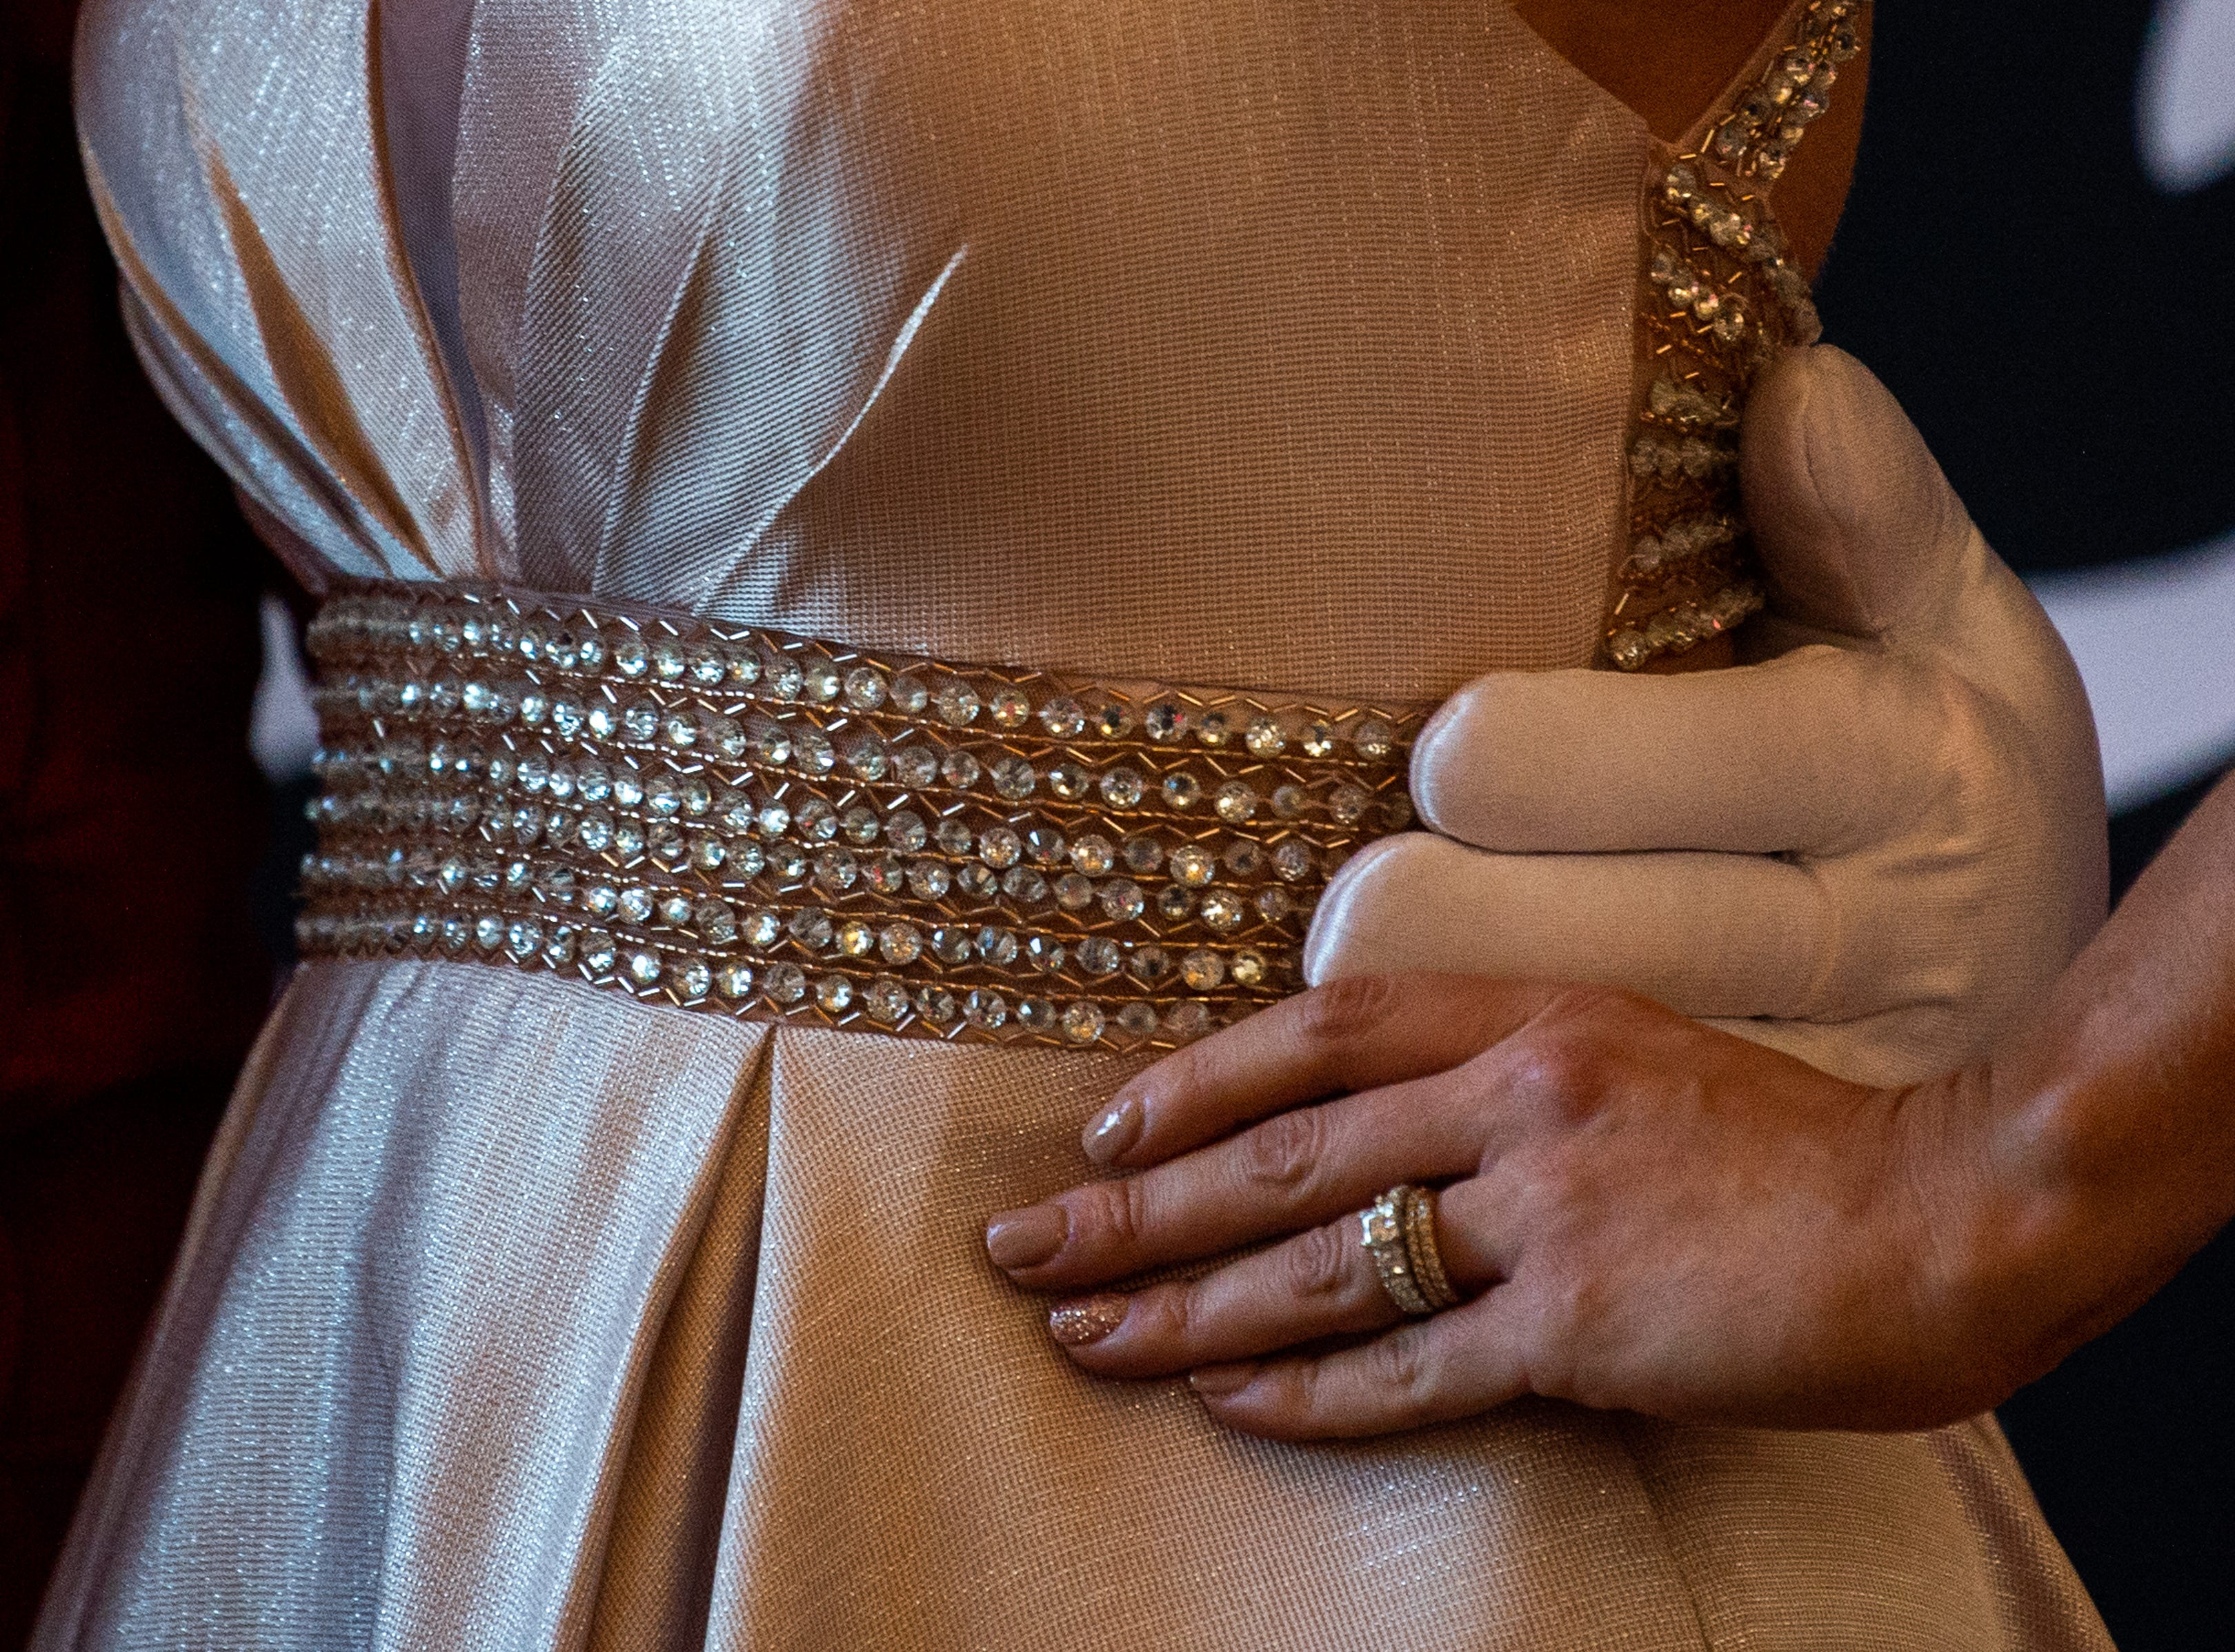 The Governor places his hand on Kathryn Minniehan's waist during Austin Peay State University's annual Candlelight Ball at the Omni Nashville Hotel Saturday, March 16, 2019, in Nashville, Tenn.